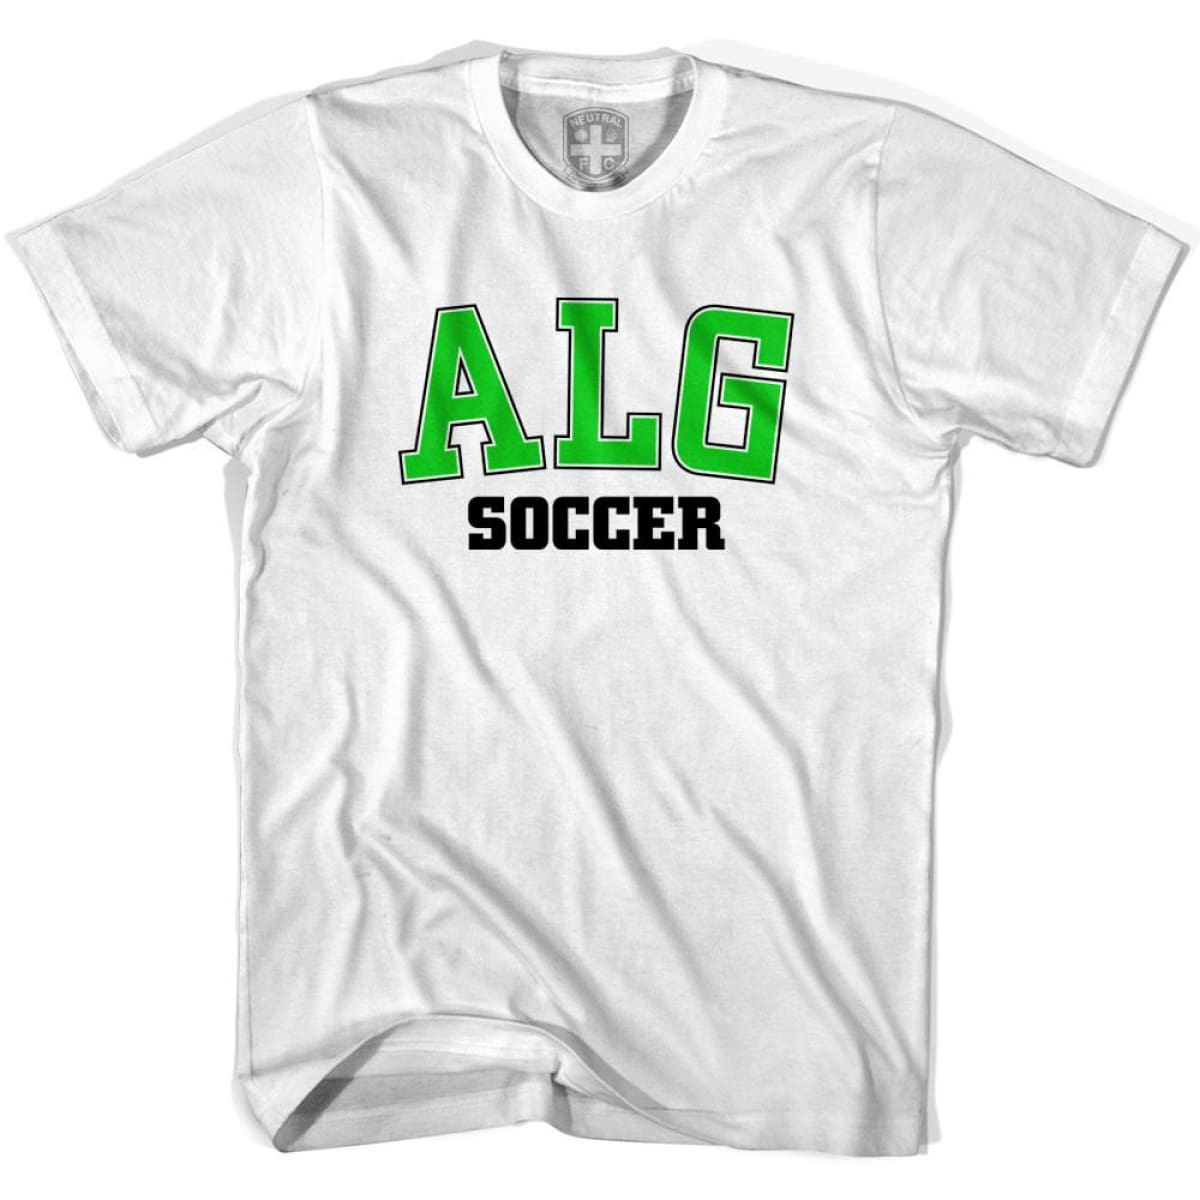 Algeria ALG Soccer Country Code T-shirt - White / Youth X-Small - Ultras Soccer T-shirts